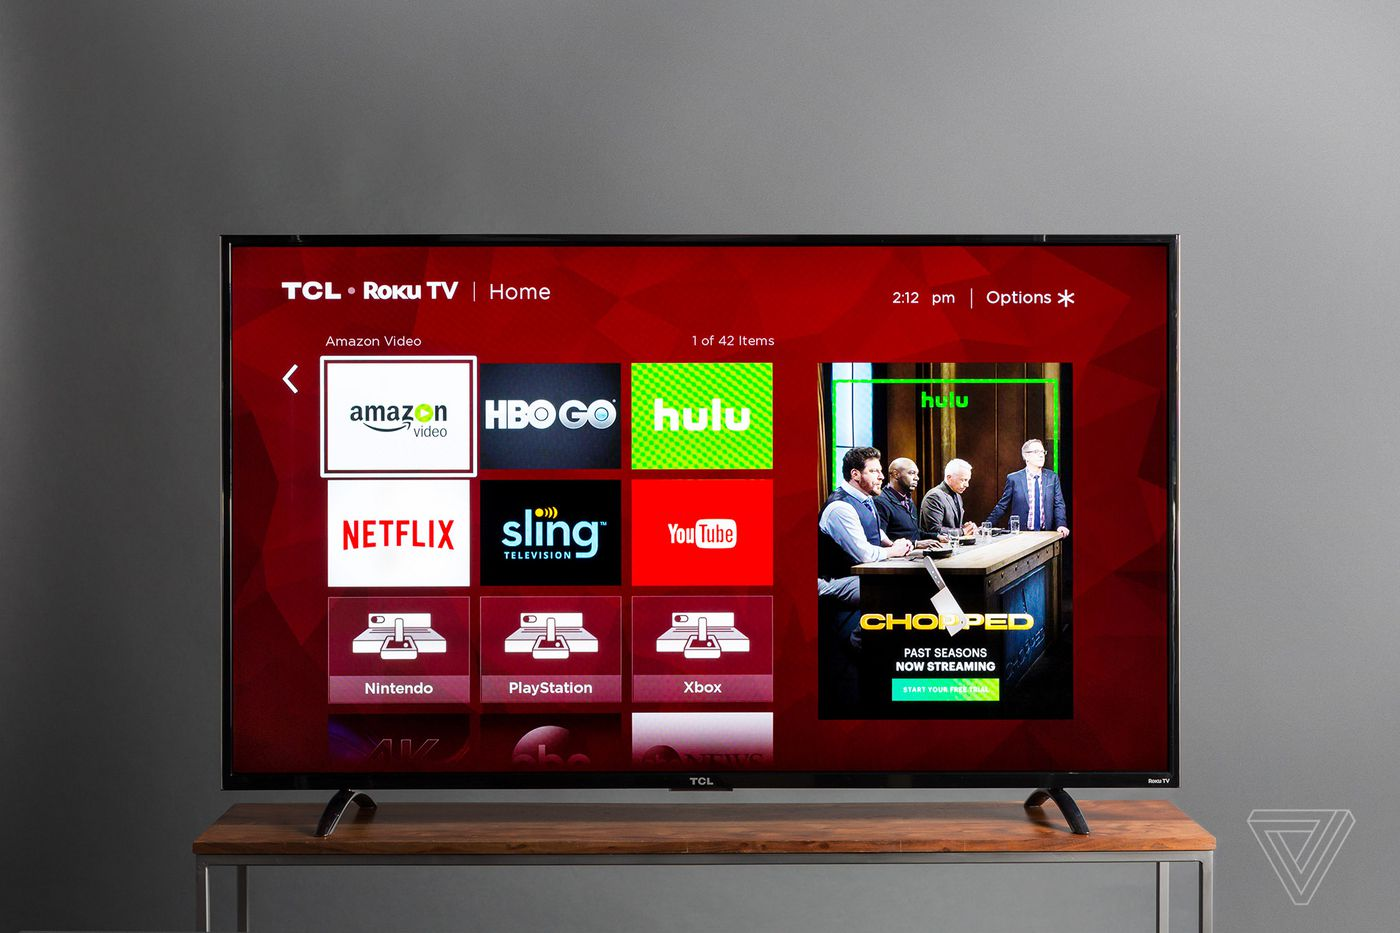 How to turn off motion smoothing on your high-definition TV